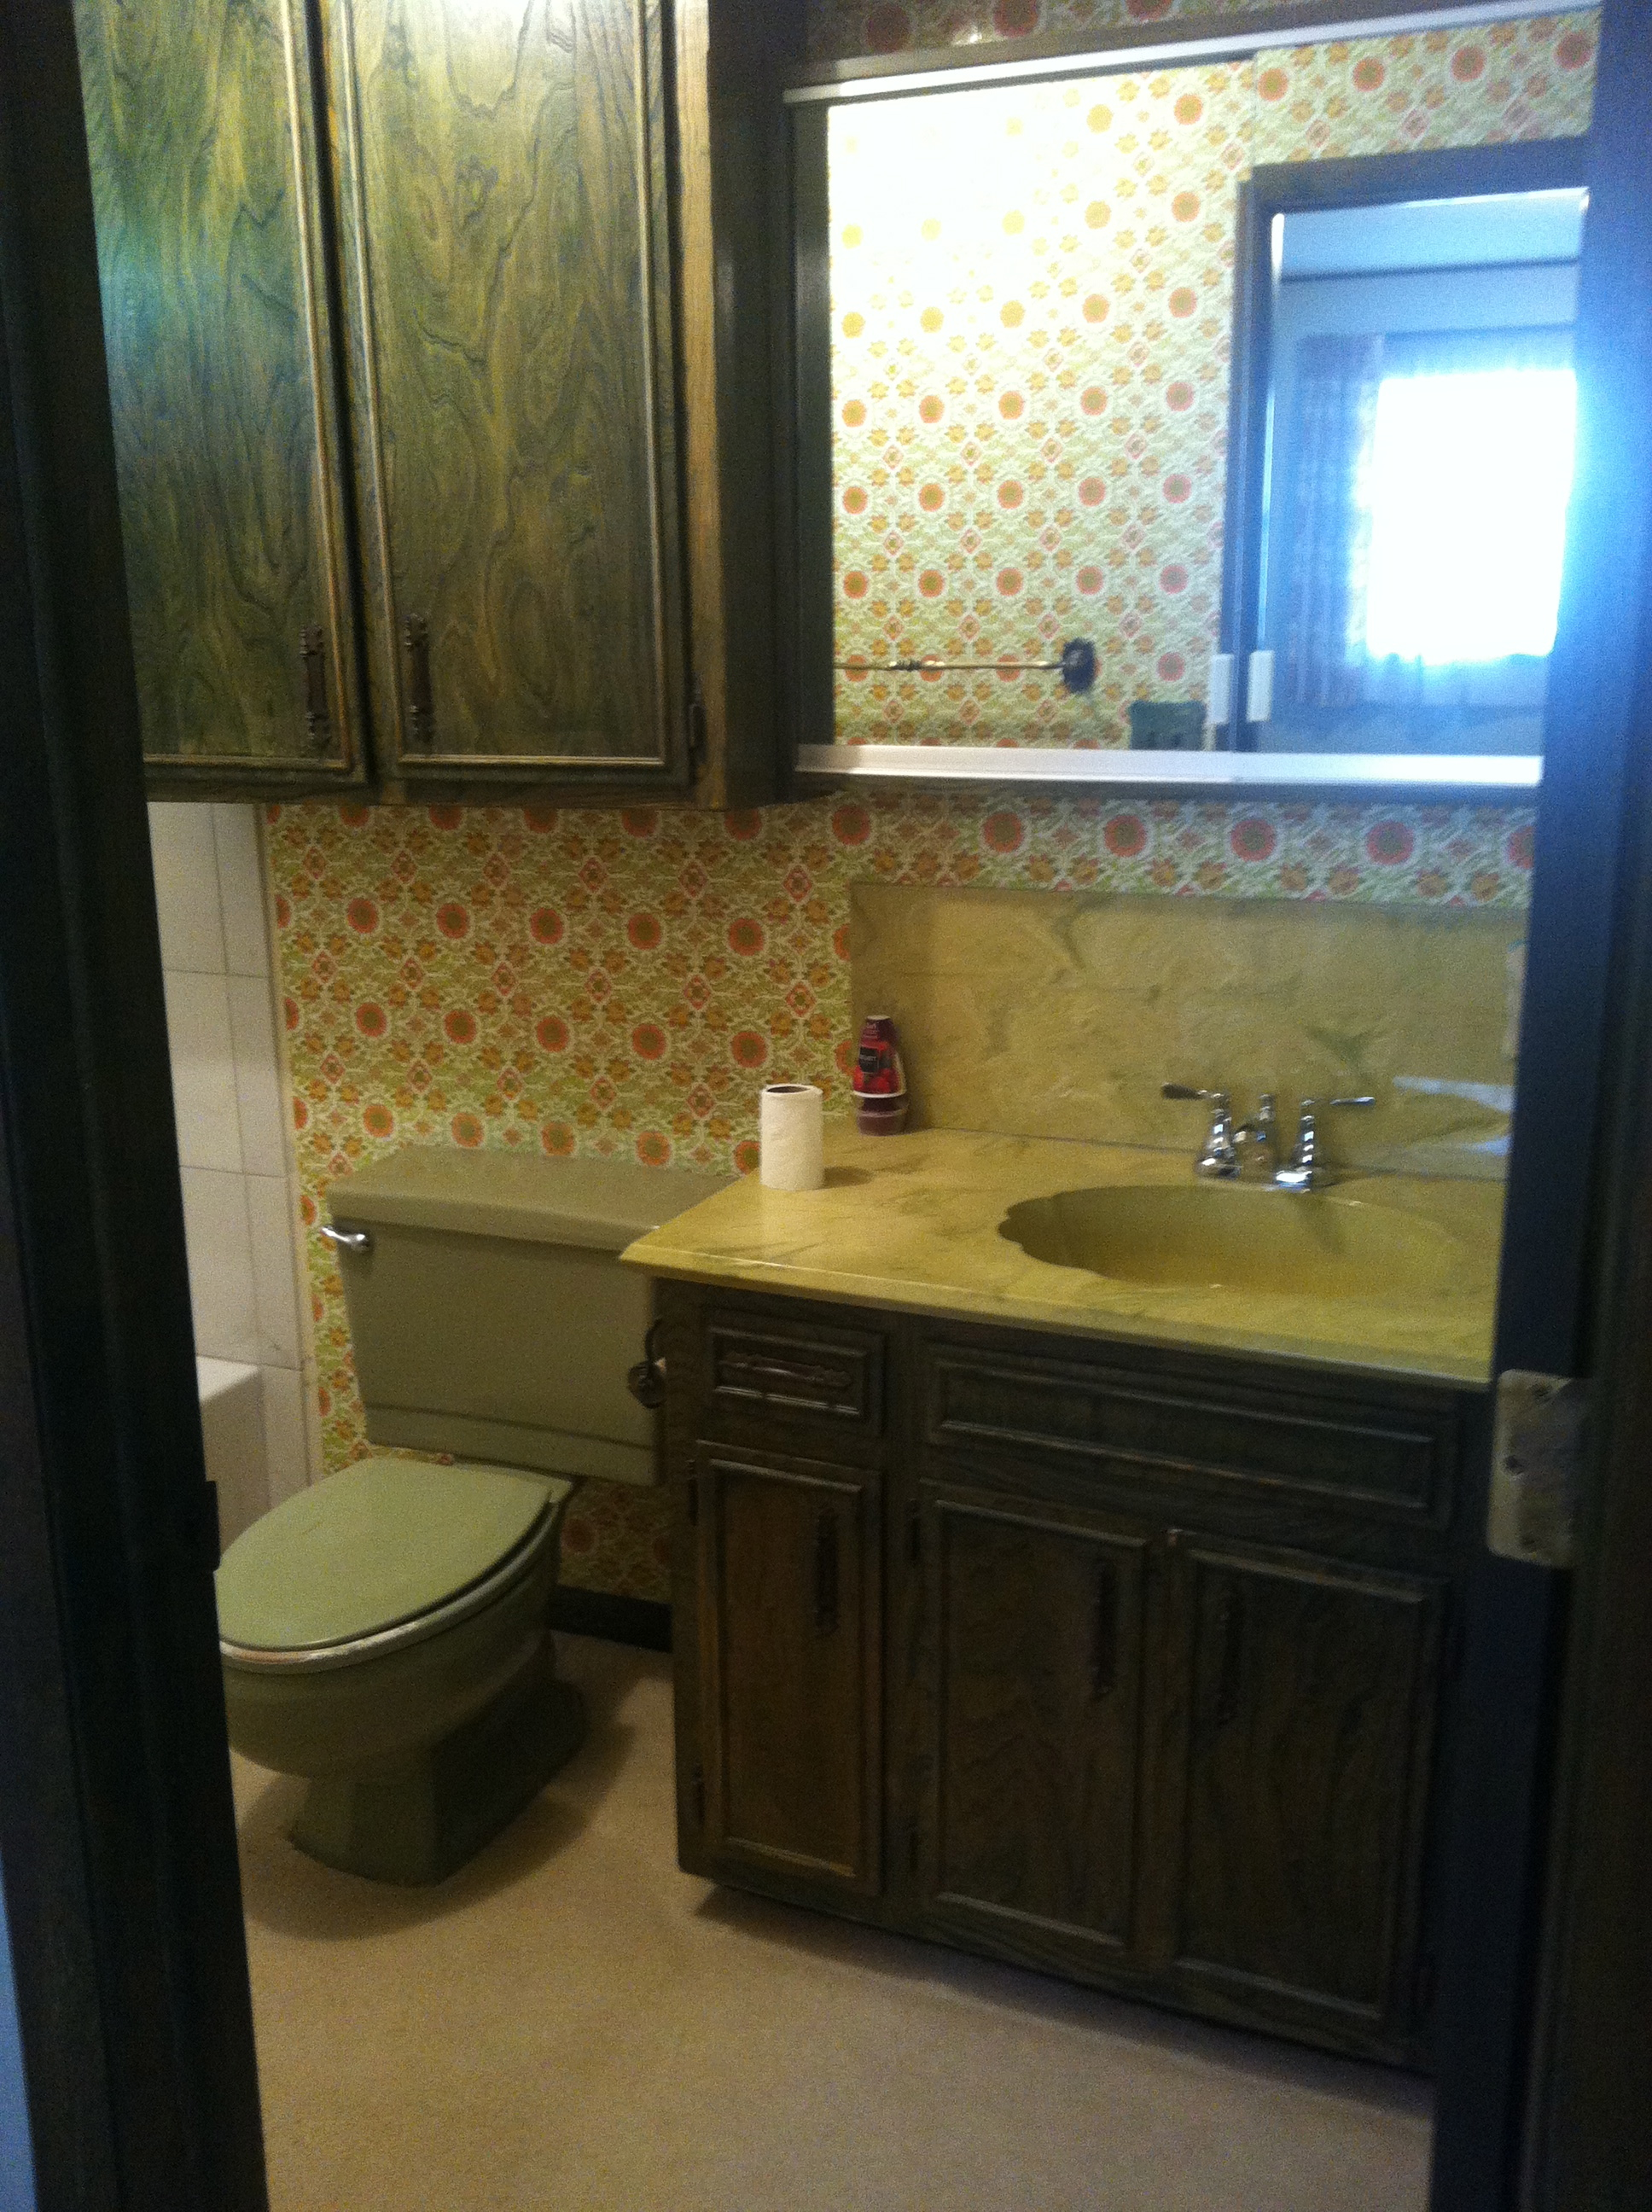 Aged Bathroom Countertop Dilemma